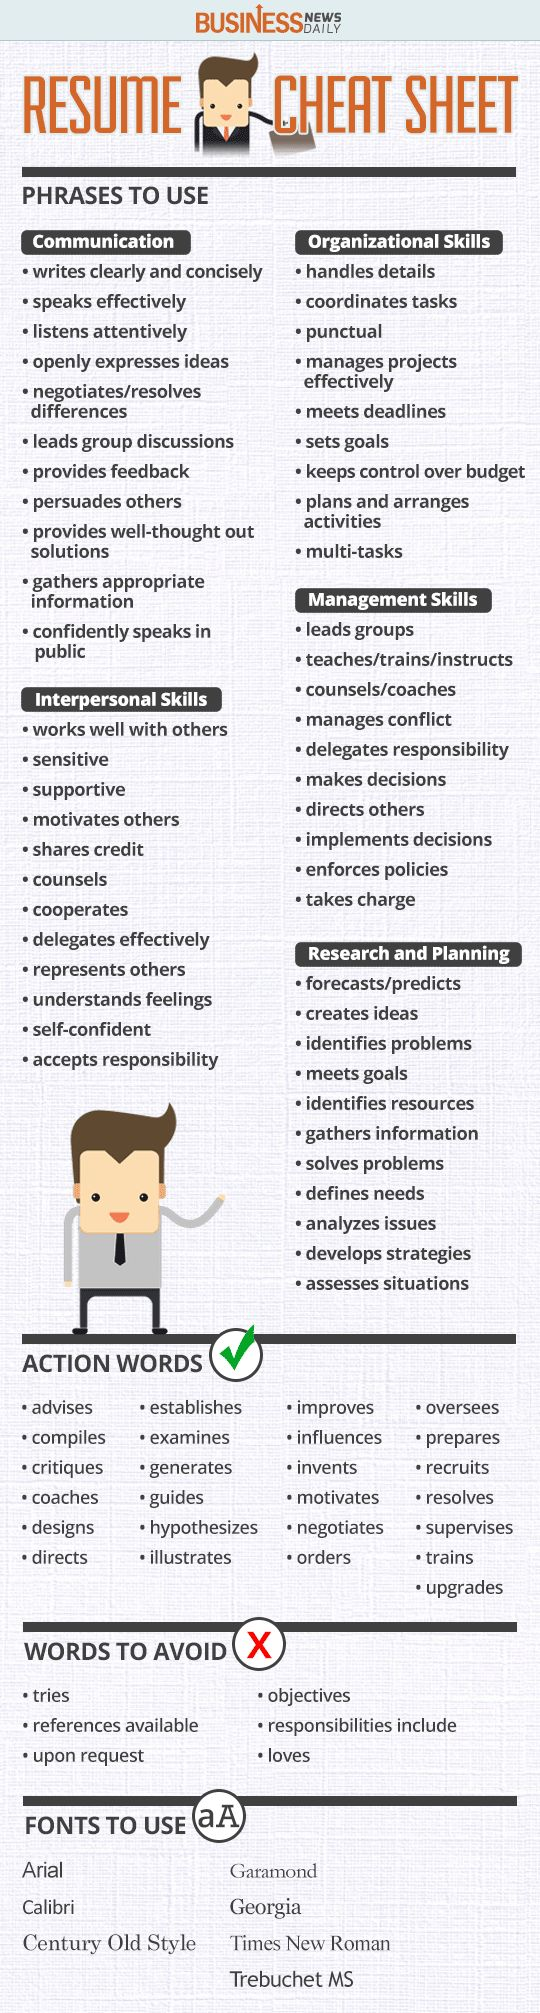 Opposenewapstandardsus  Pleasant  Ideas About Resume On Pinterest  Cv Format Resume Cv And  With Goodlooking Resume Cheat Sheet Infographic Andrews Almost Done With A Complete Unit On Employment Which With Endearing Resume Description For Server Also Resume Defintion In Addition Cosmetology Student Resume And Resume For Assistant Manager As Well As Icu Resume Additionally Basic Resume Cover Letter From Pinterestcom With Opposenewapstandardsus  Goodlooking  Ideas About Resume On Pinterest  Cv Format Resume Cv And  With Endearing Resume Cheat Sheet Infographic Andrews Almost Done With A Complete Unit On Employment Which And Pleasant Resume Description For Server Also Resume Defintion In Addition Cosmetology Student Resume From Pinterestcom